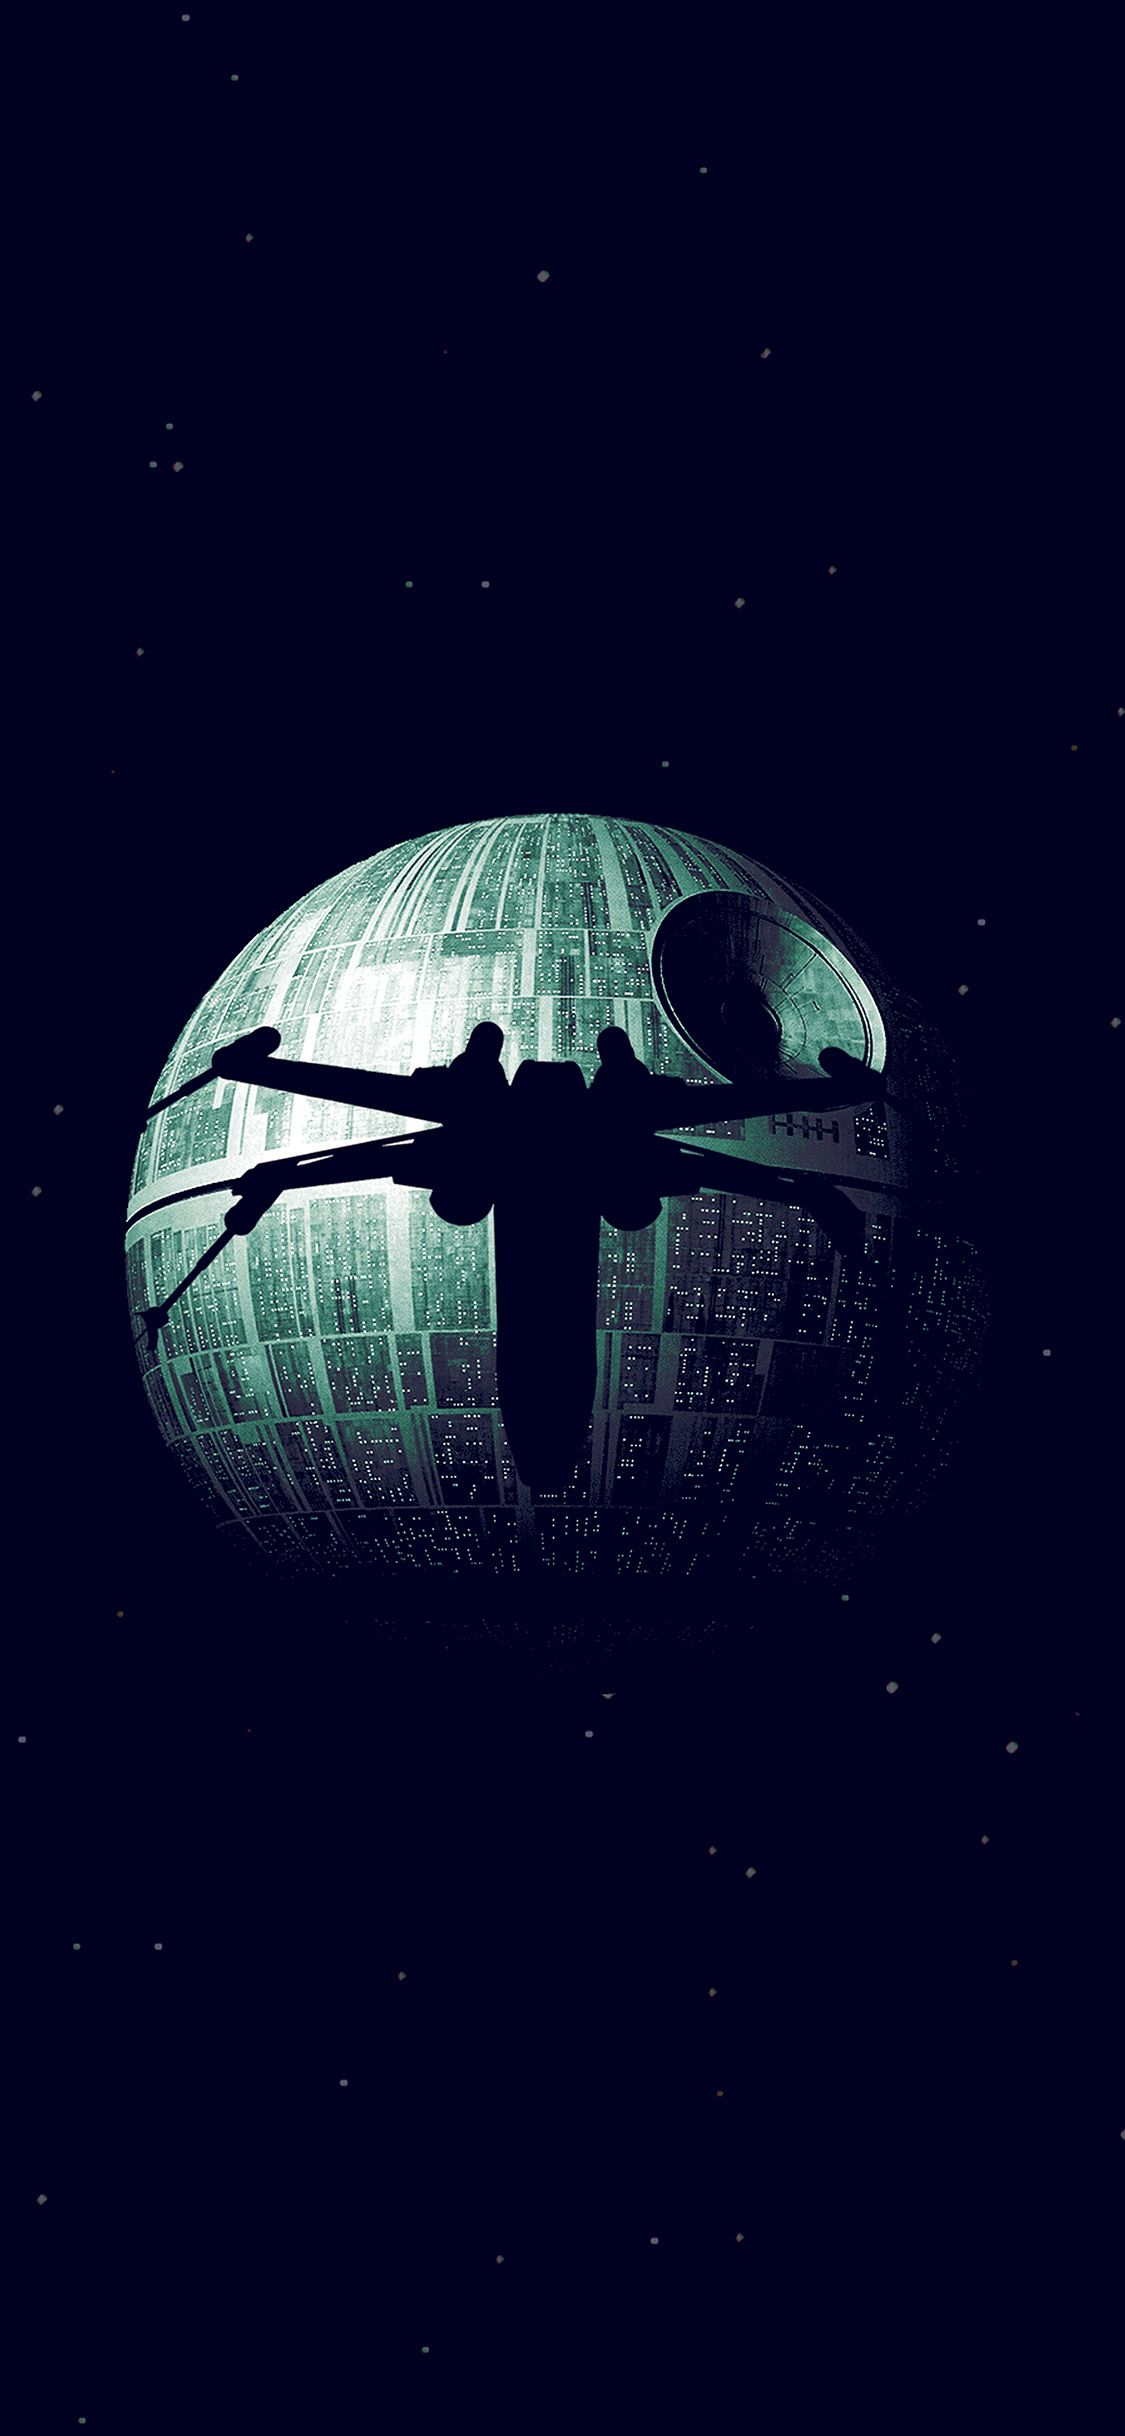 Star Wars iPhone Wallpapers - Wallpaper Cave